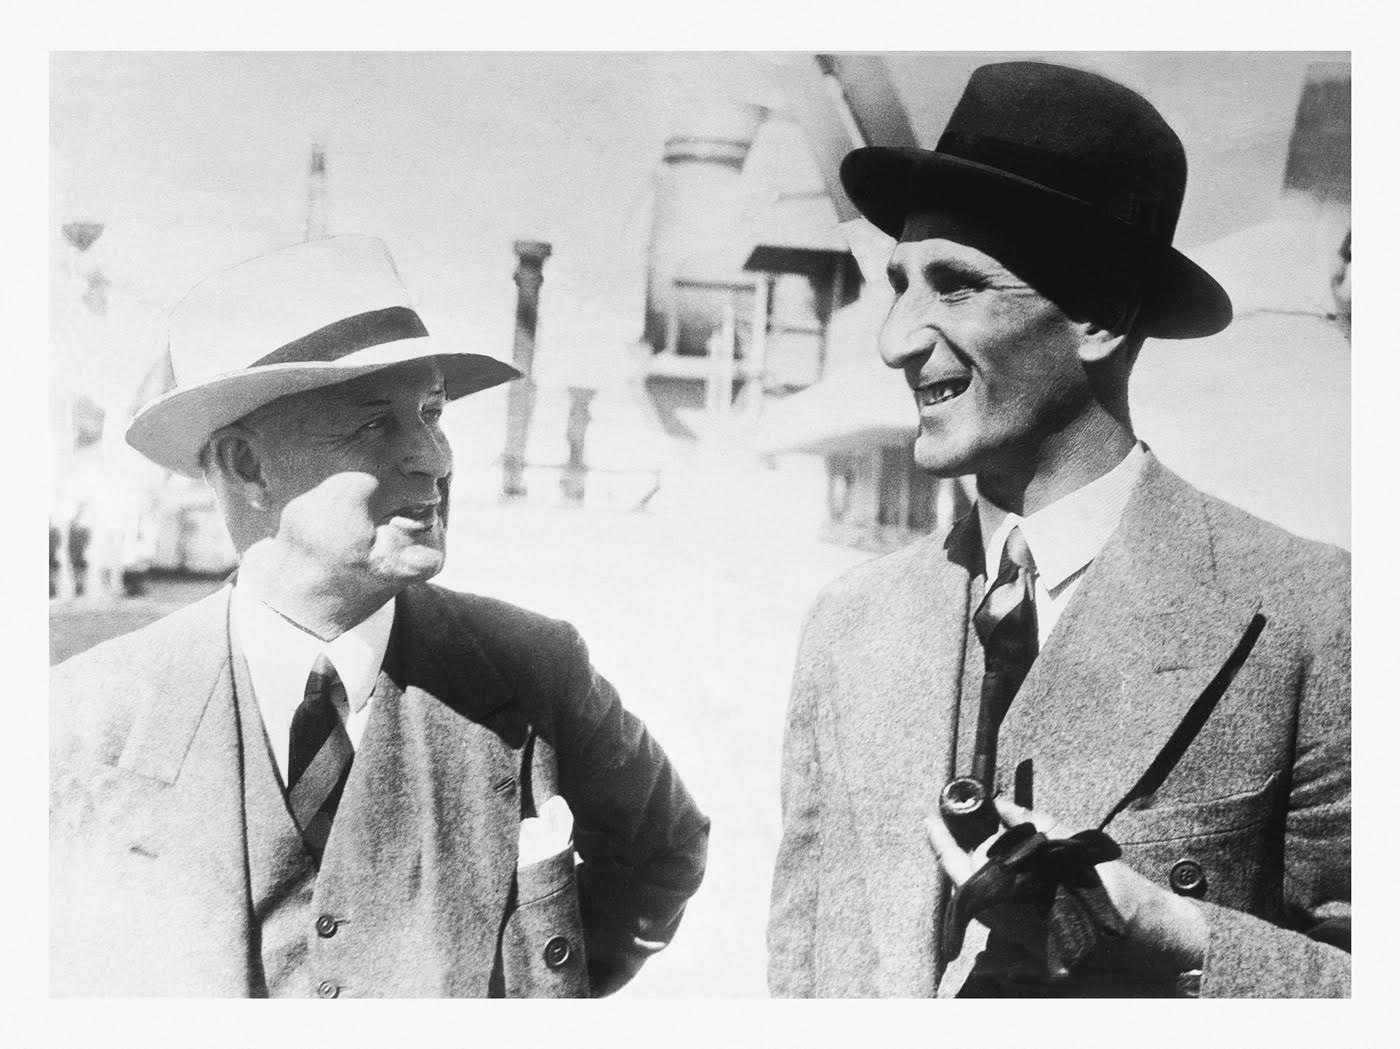 Pelham Warner and Douglas Jardine: not fans of Australiana